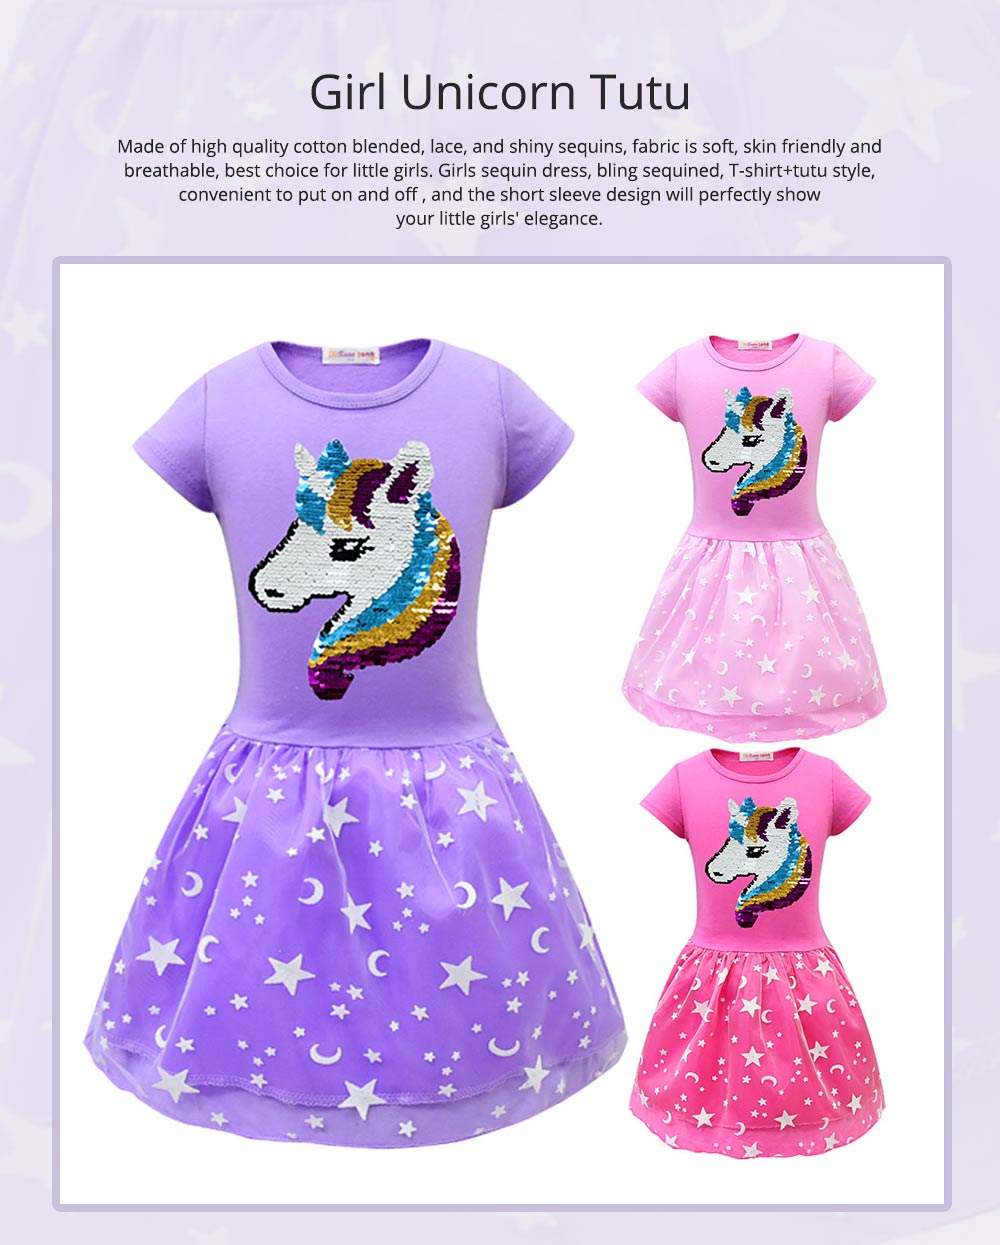 Girl Unicorn Princess Dress, Cute One-Piece Party Outfit Skirt Set, Bubble Skirt for 3-8 Years Old Girls 0